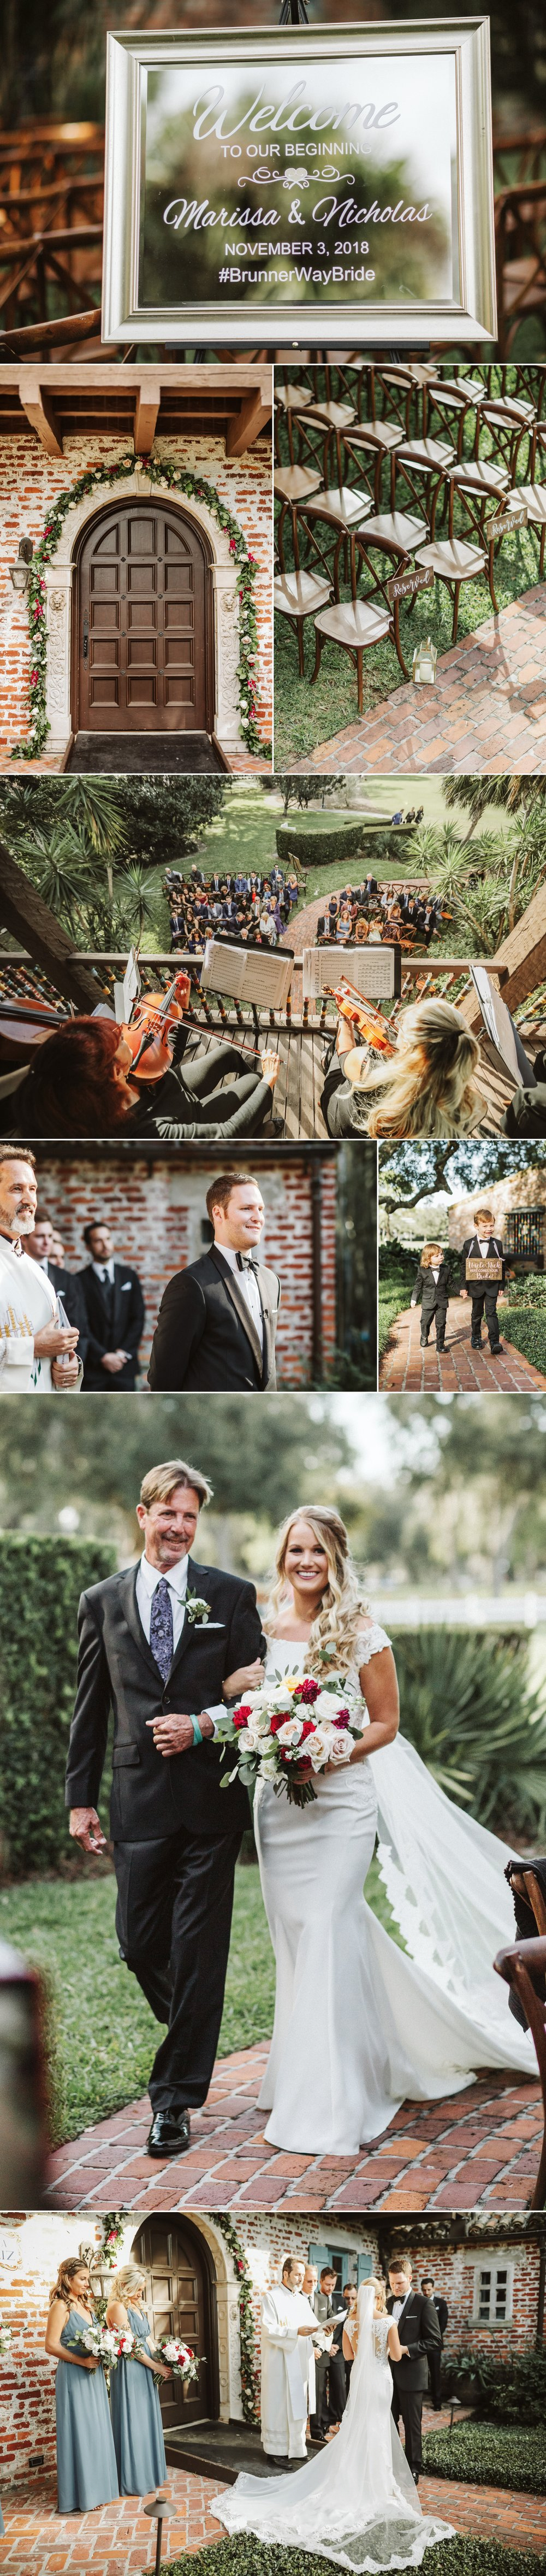 Casa Feliz Romantic Black Tie Wedding- Nick + Marissa- by Shaina DeCiryan Photography4.jpg